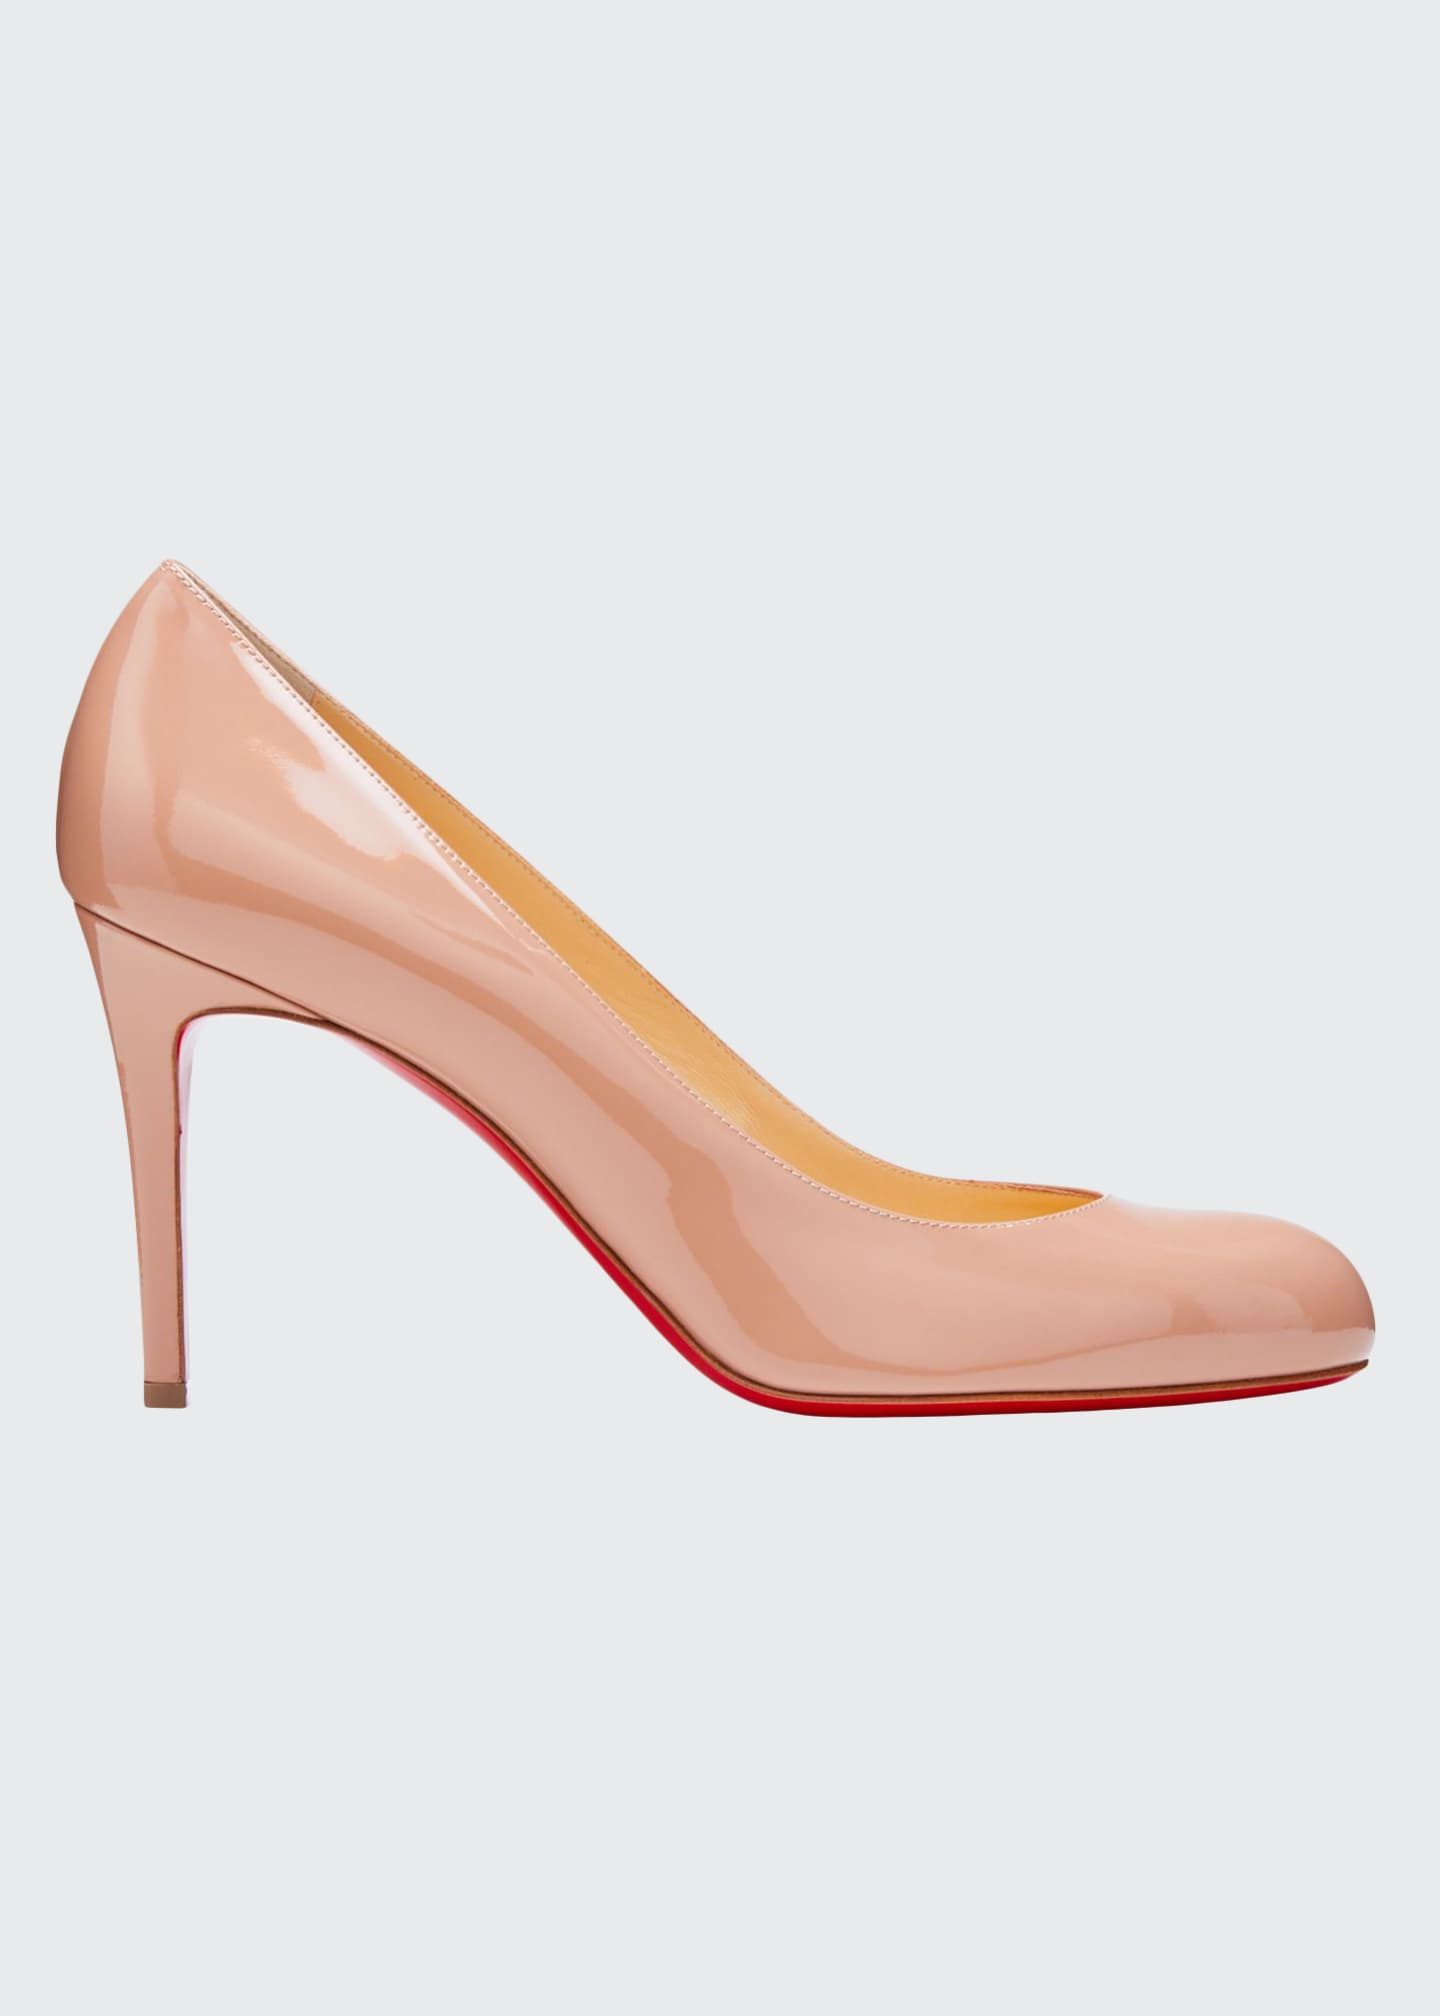 Christian Louboutin Simple Patent 85mm Red Sole Pump